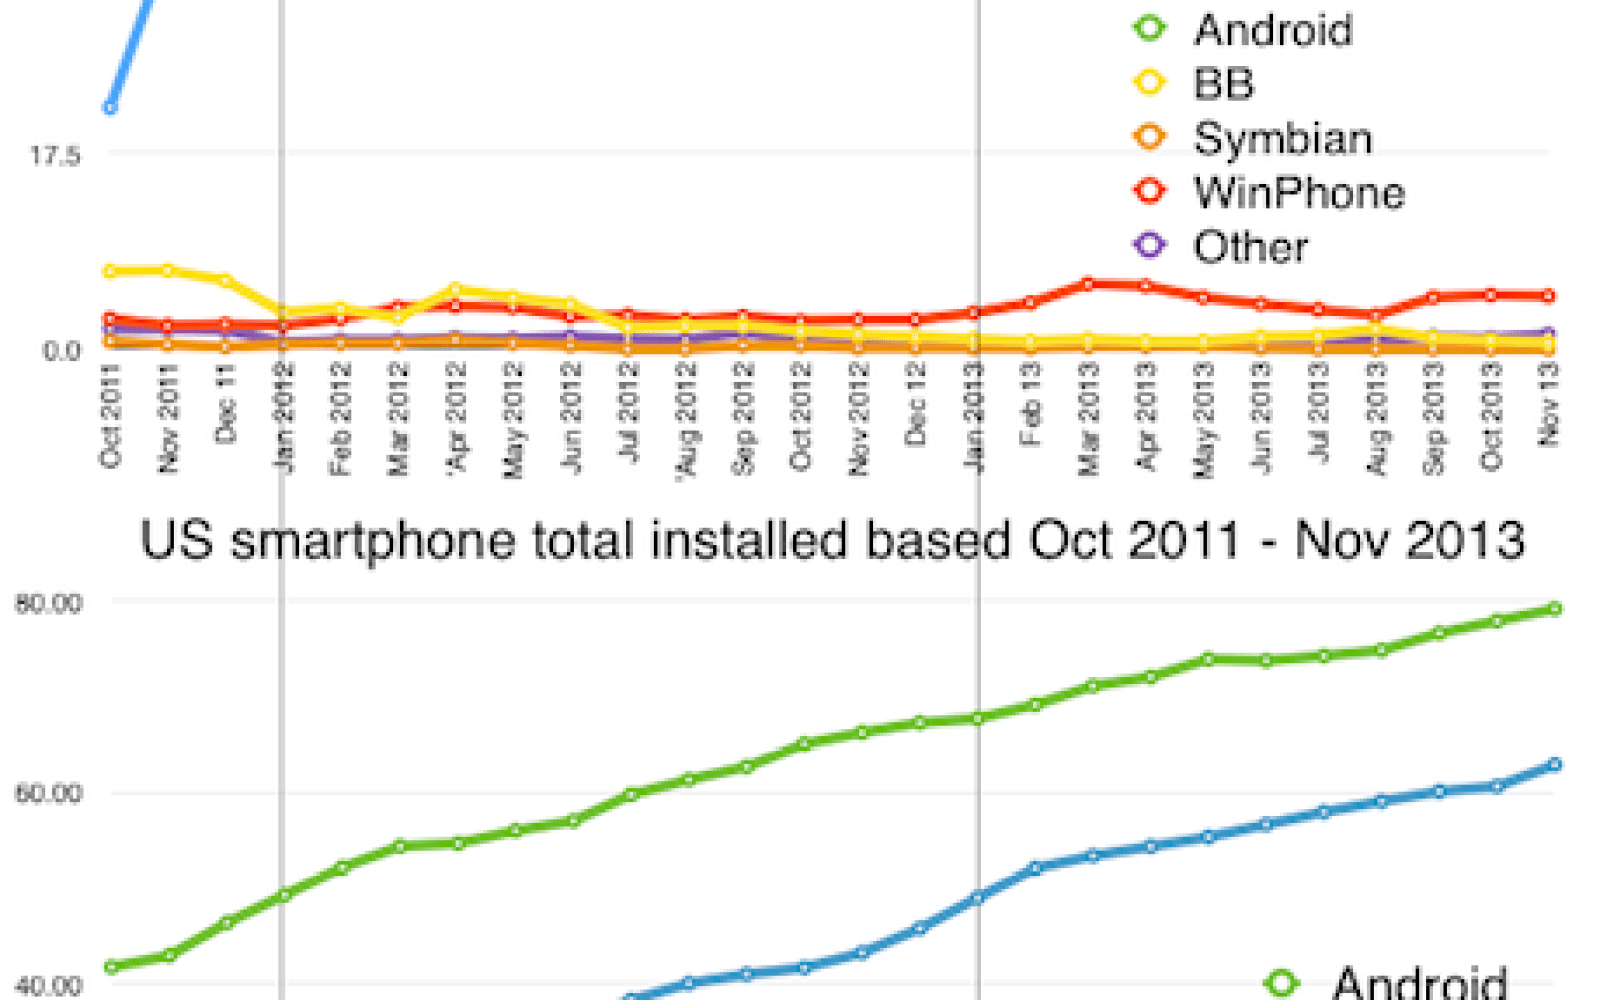 iOS/Android market share vs. installed base visualized